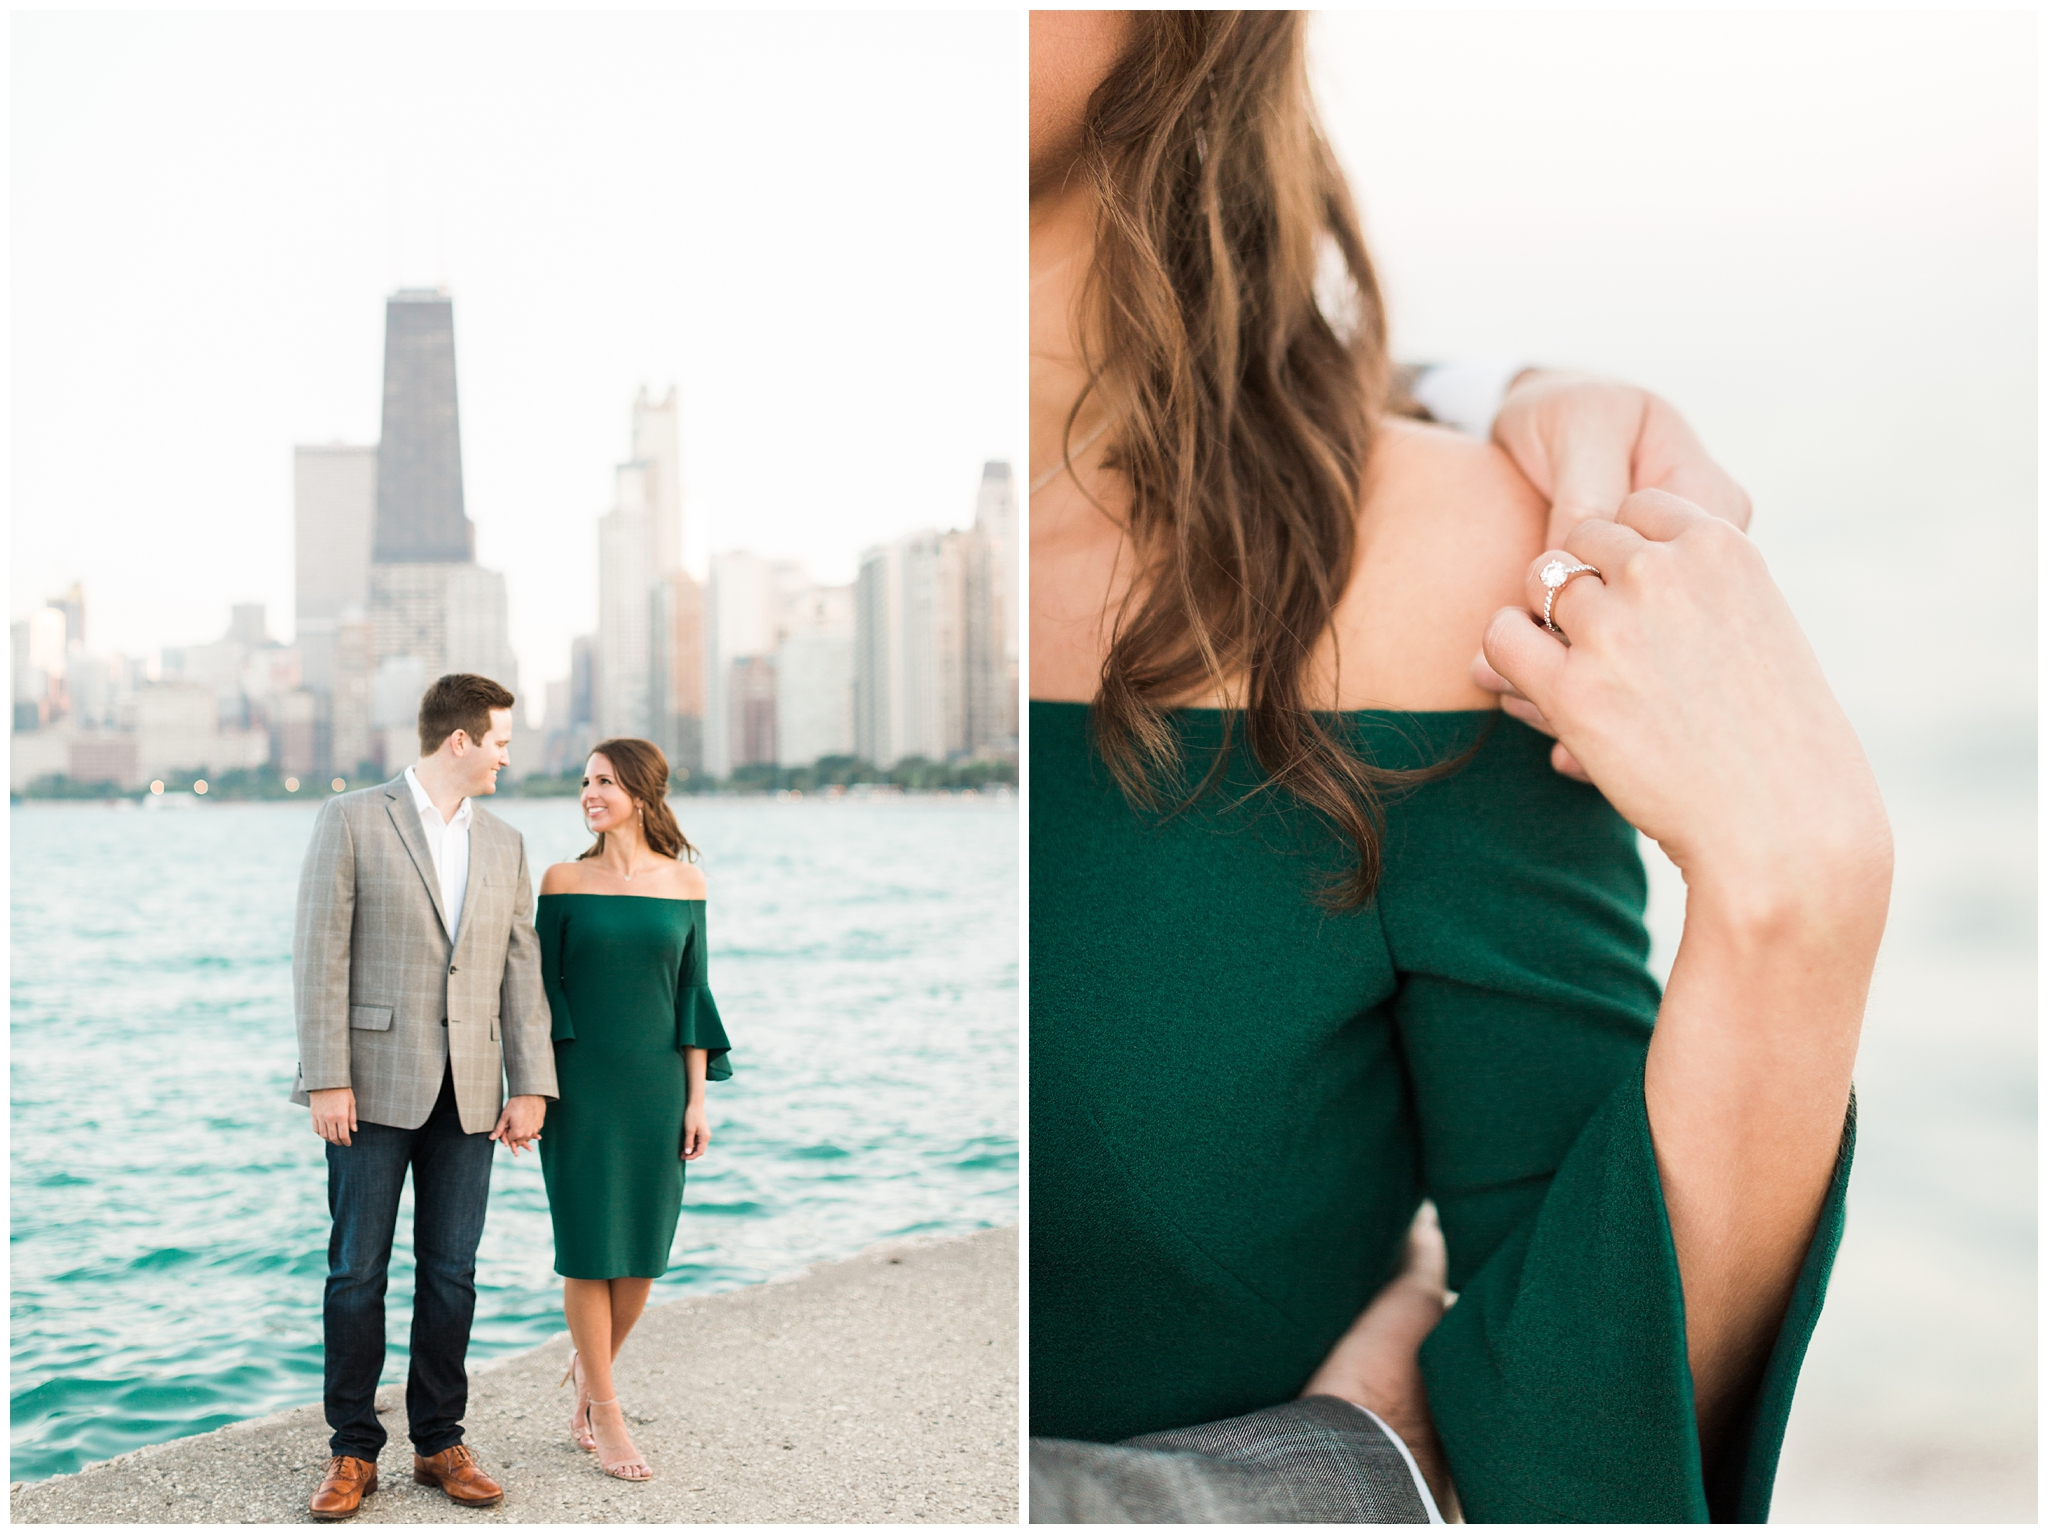 chicagoengagementsession_northavebeachengagementsession_northavebeach_northavenuebeach_northavenuebeachengagementsession_chicagoriverwalk_chicagoriverwalkengagementsession_0011.jpg